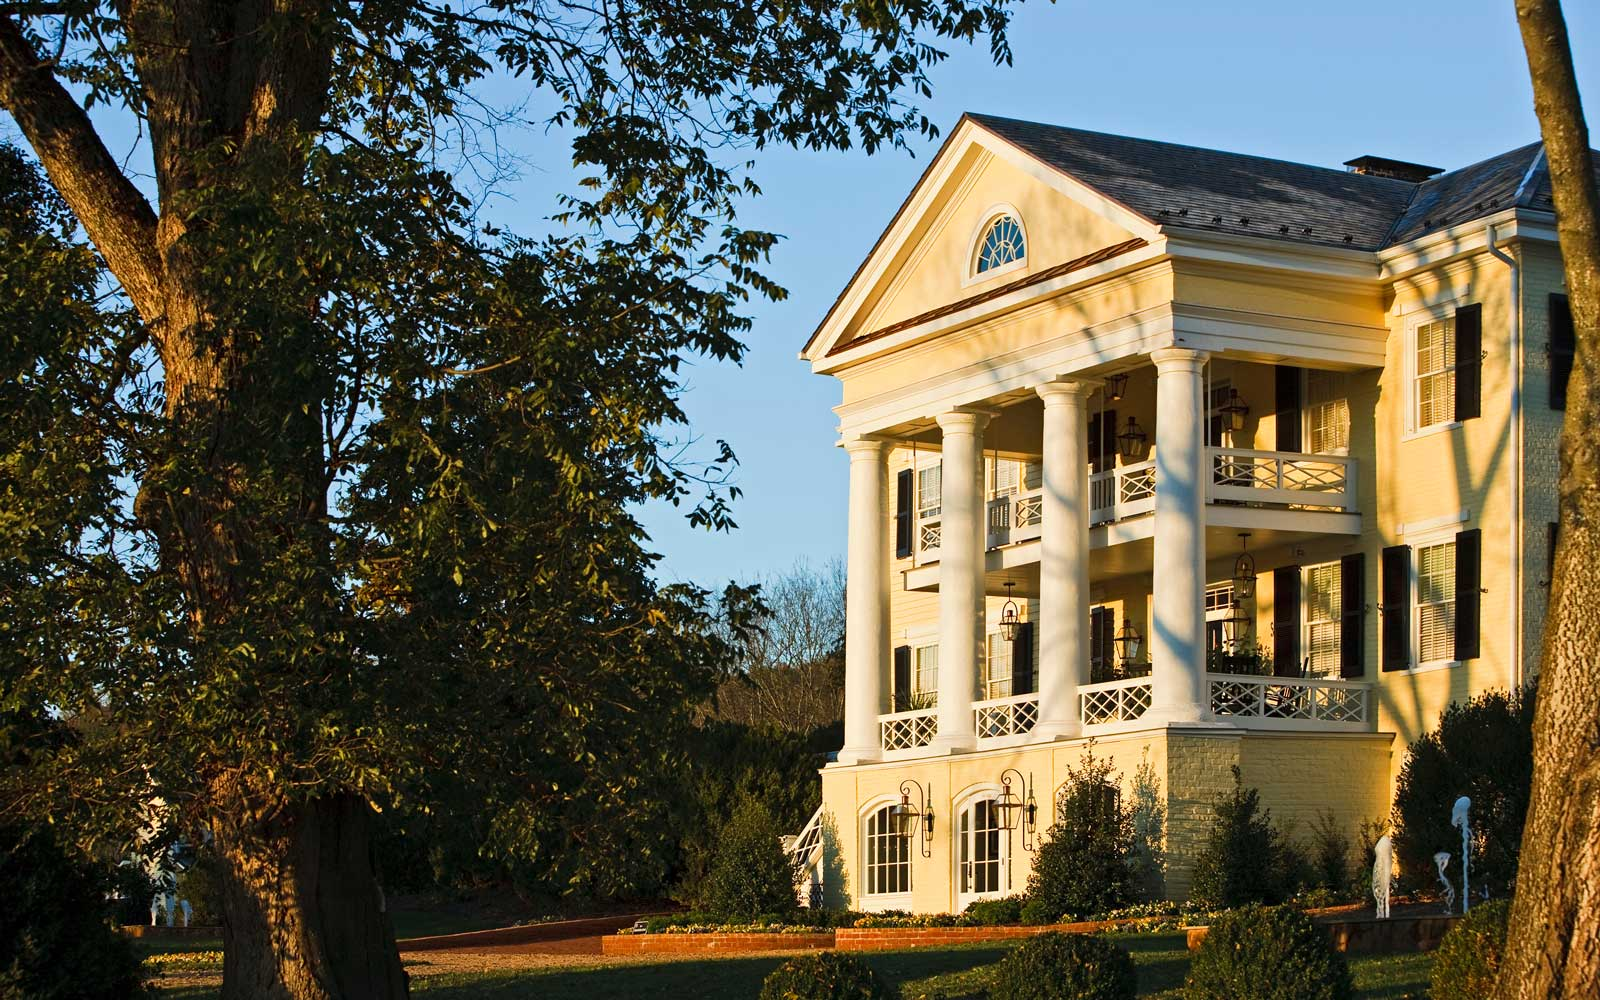 Save $200 on a Stay at the Inn at Willow Grove in the Heart of Virginia Wine Country